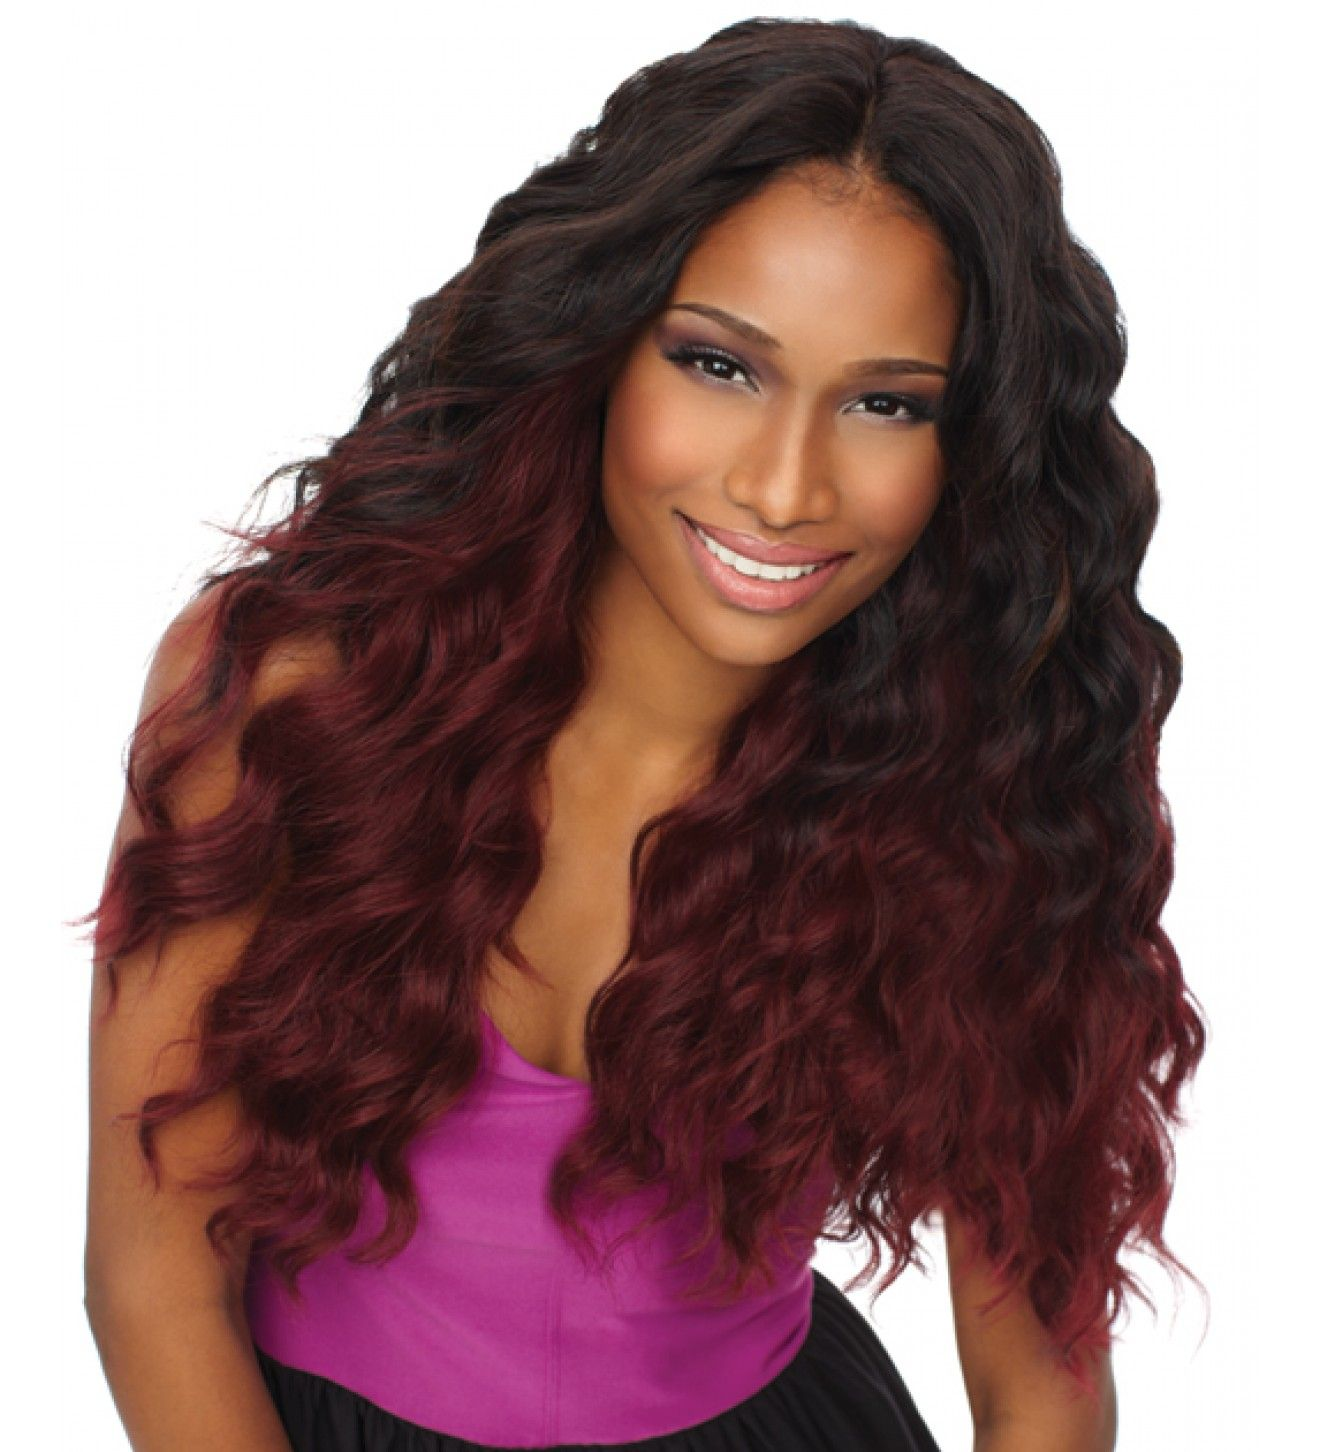 Brazilian hair is one of the most popular types of hair extensions brazilian hair is one of the most popular types of hair extensions in the market today pmusecretfo Image collections